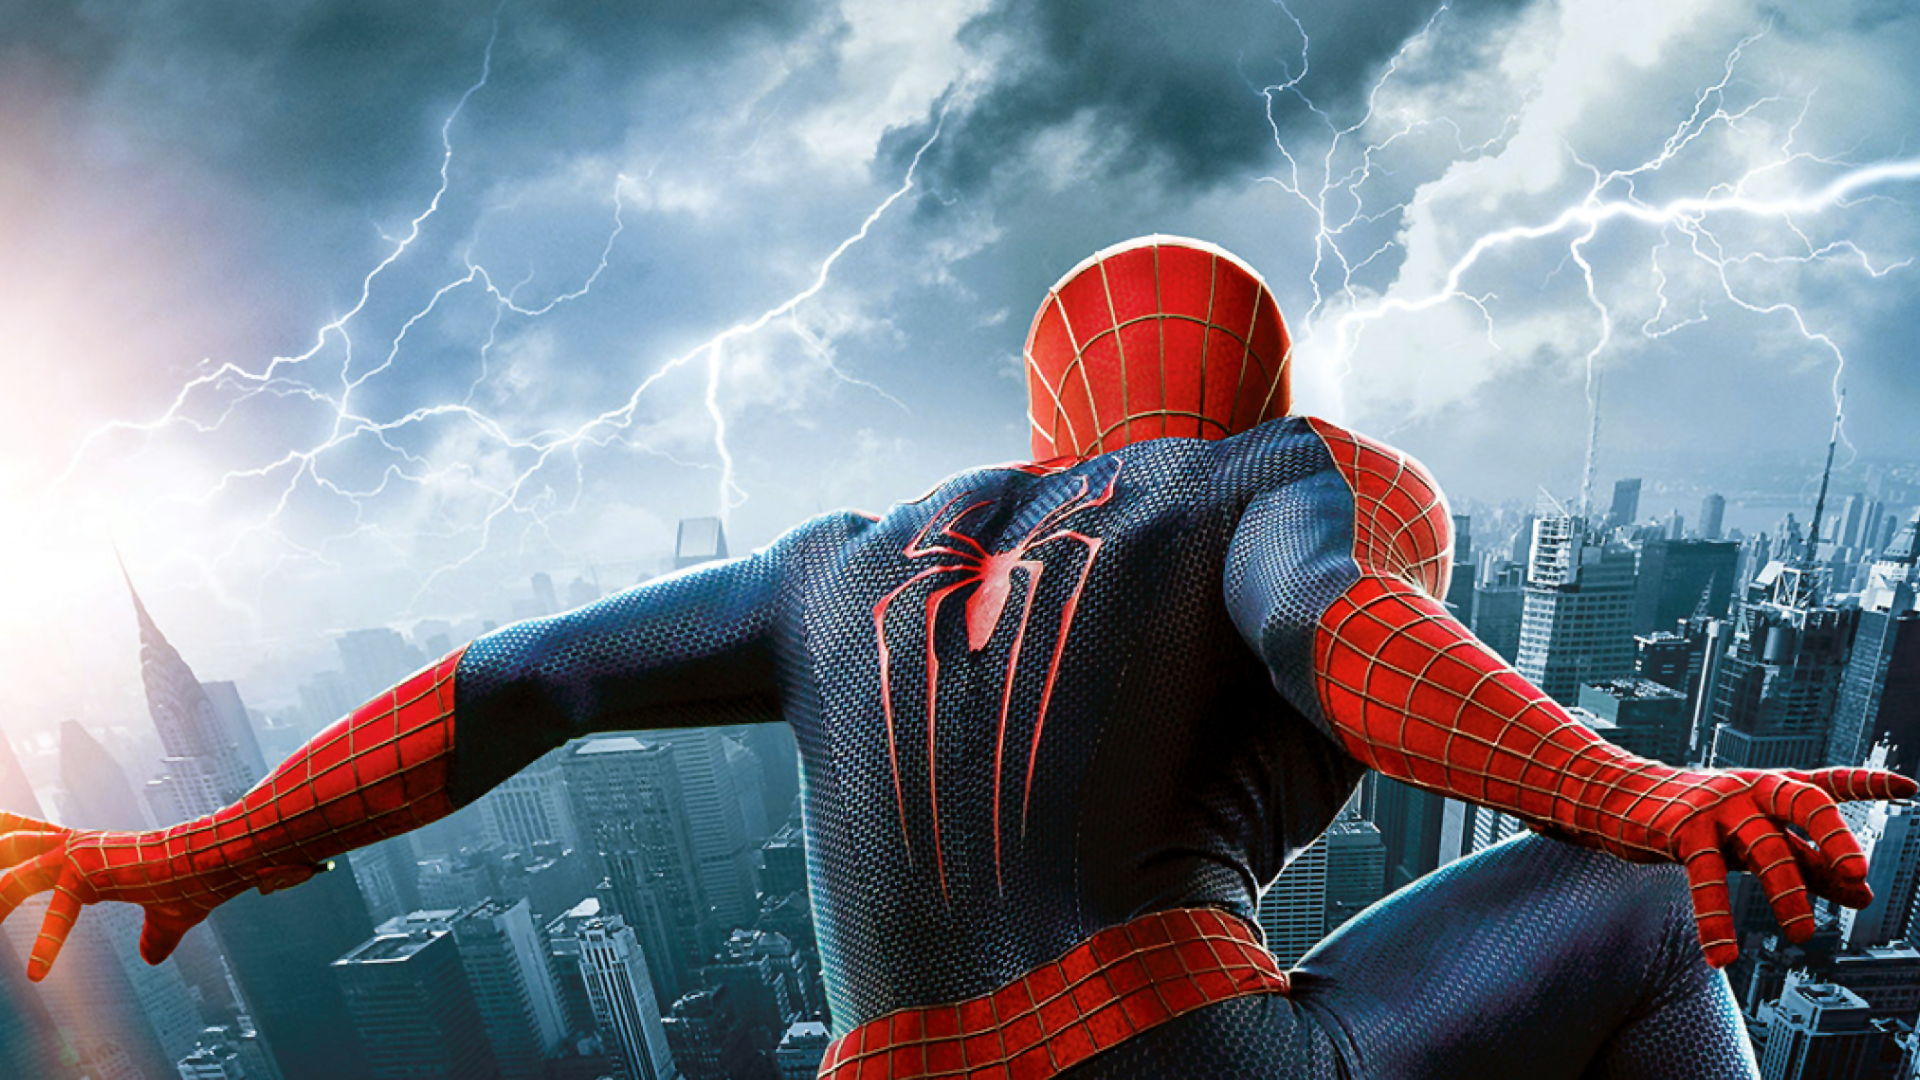 live-stream of The Amazing Spider-Man 2